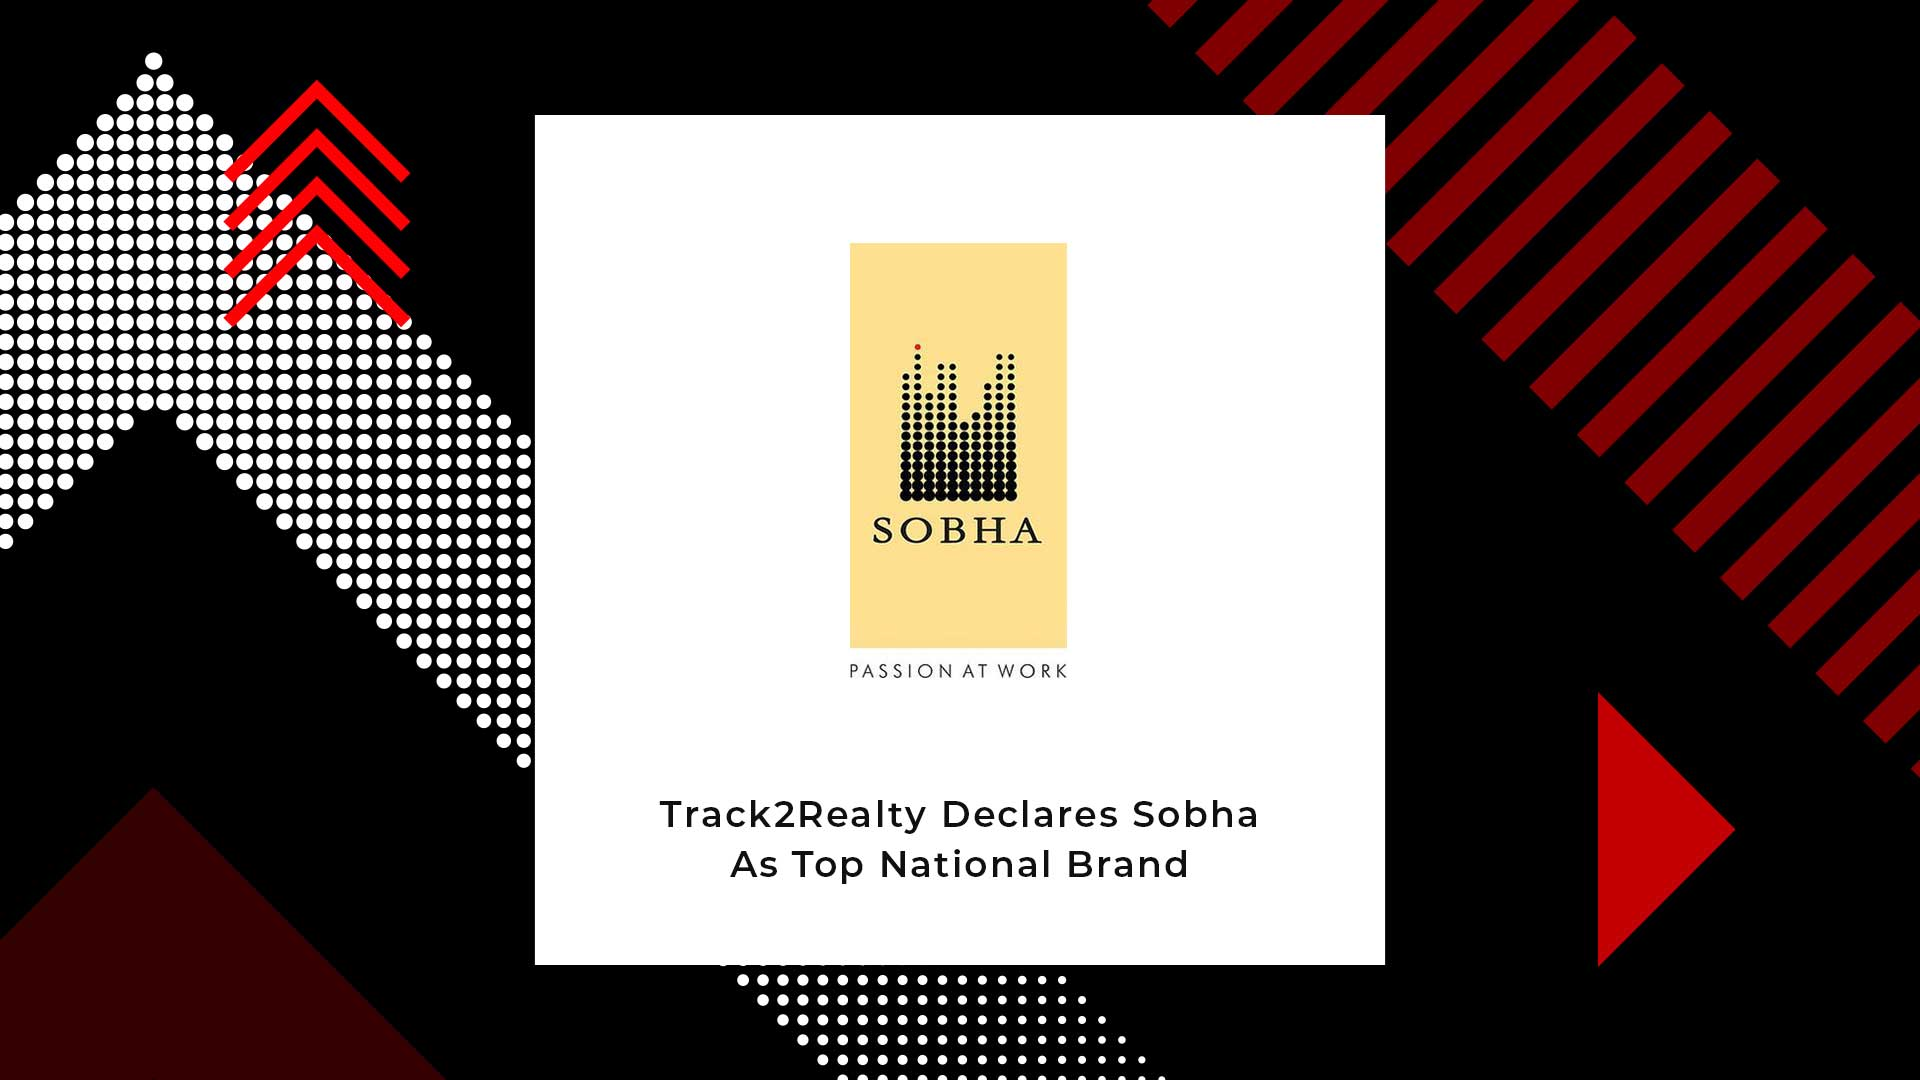 SOBHA Voted Top National Realty Brand For The 5th Time